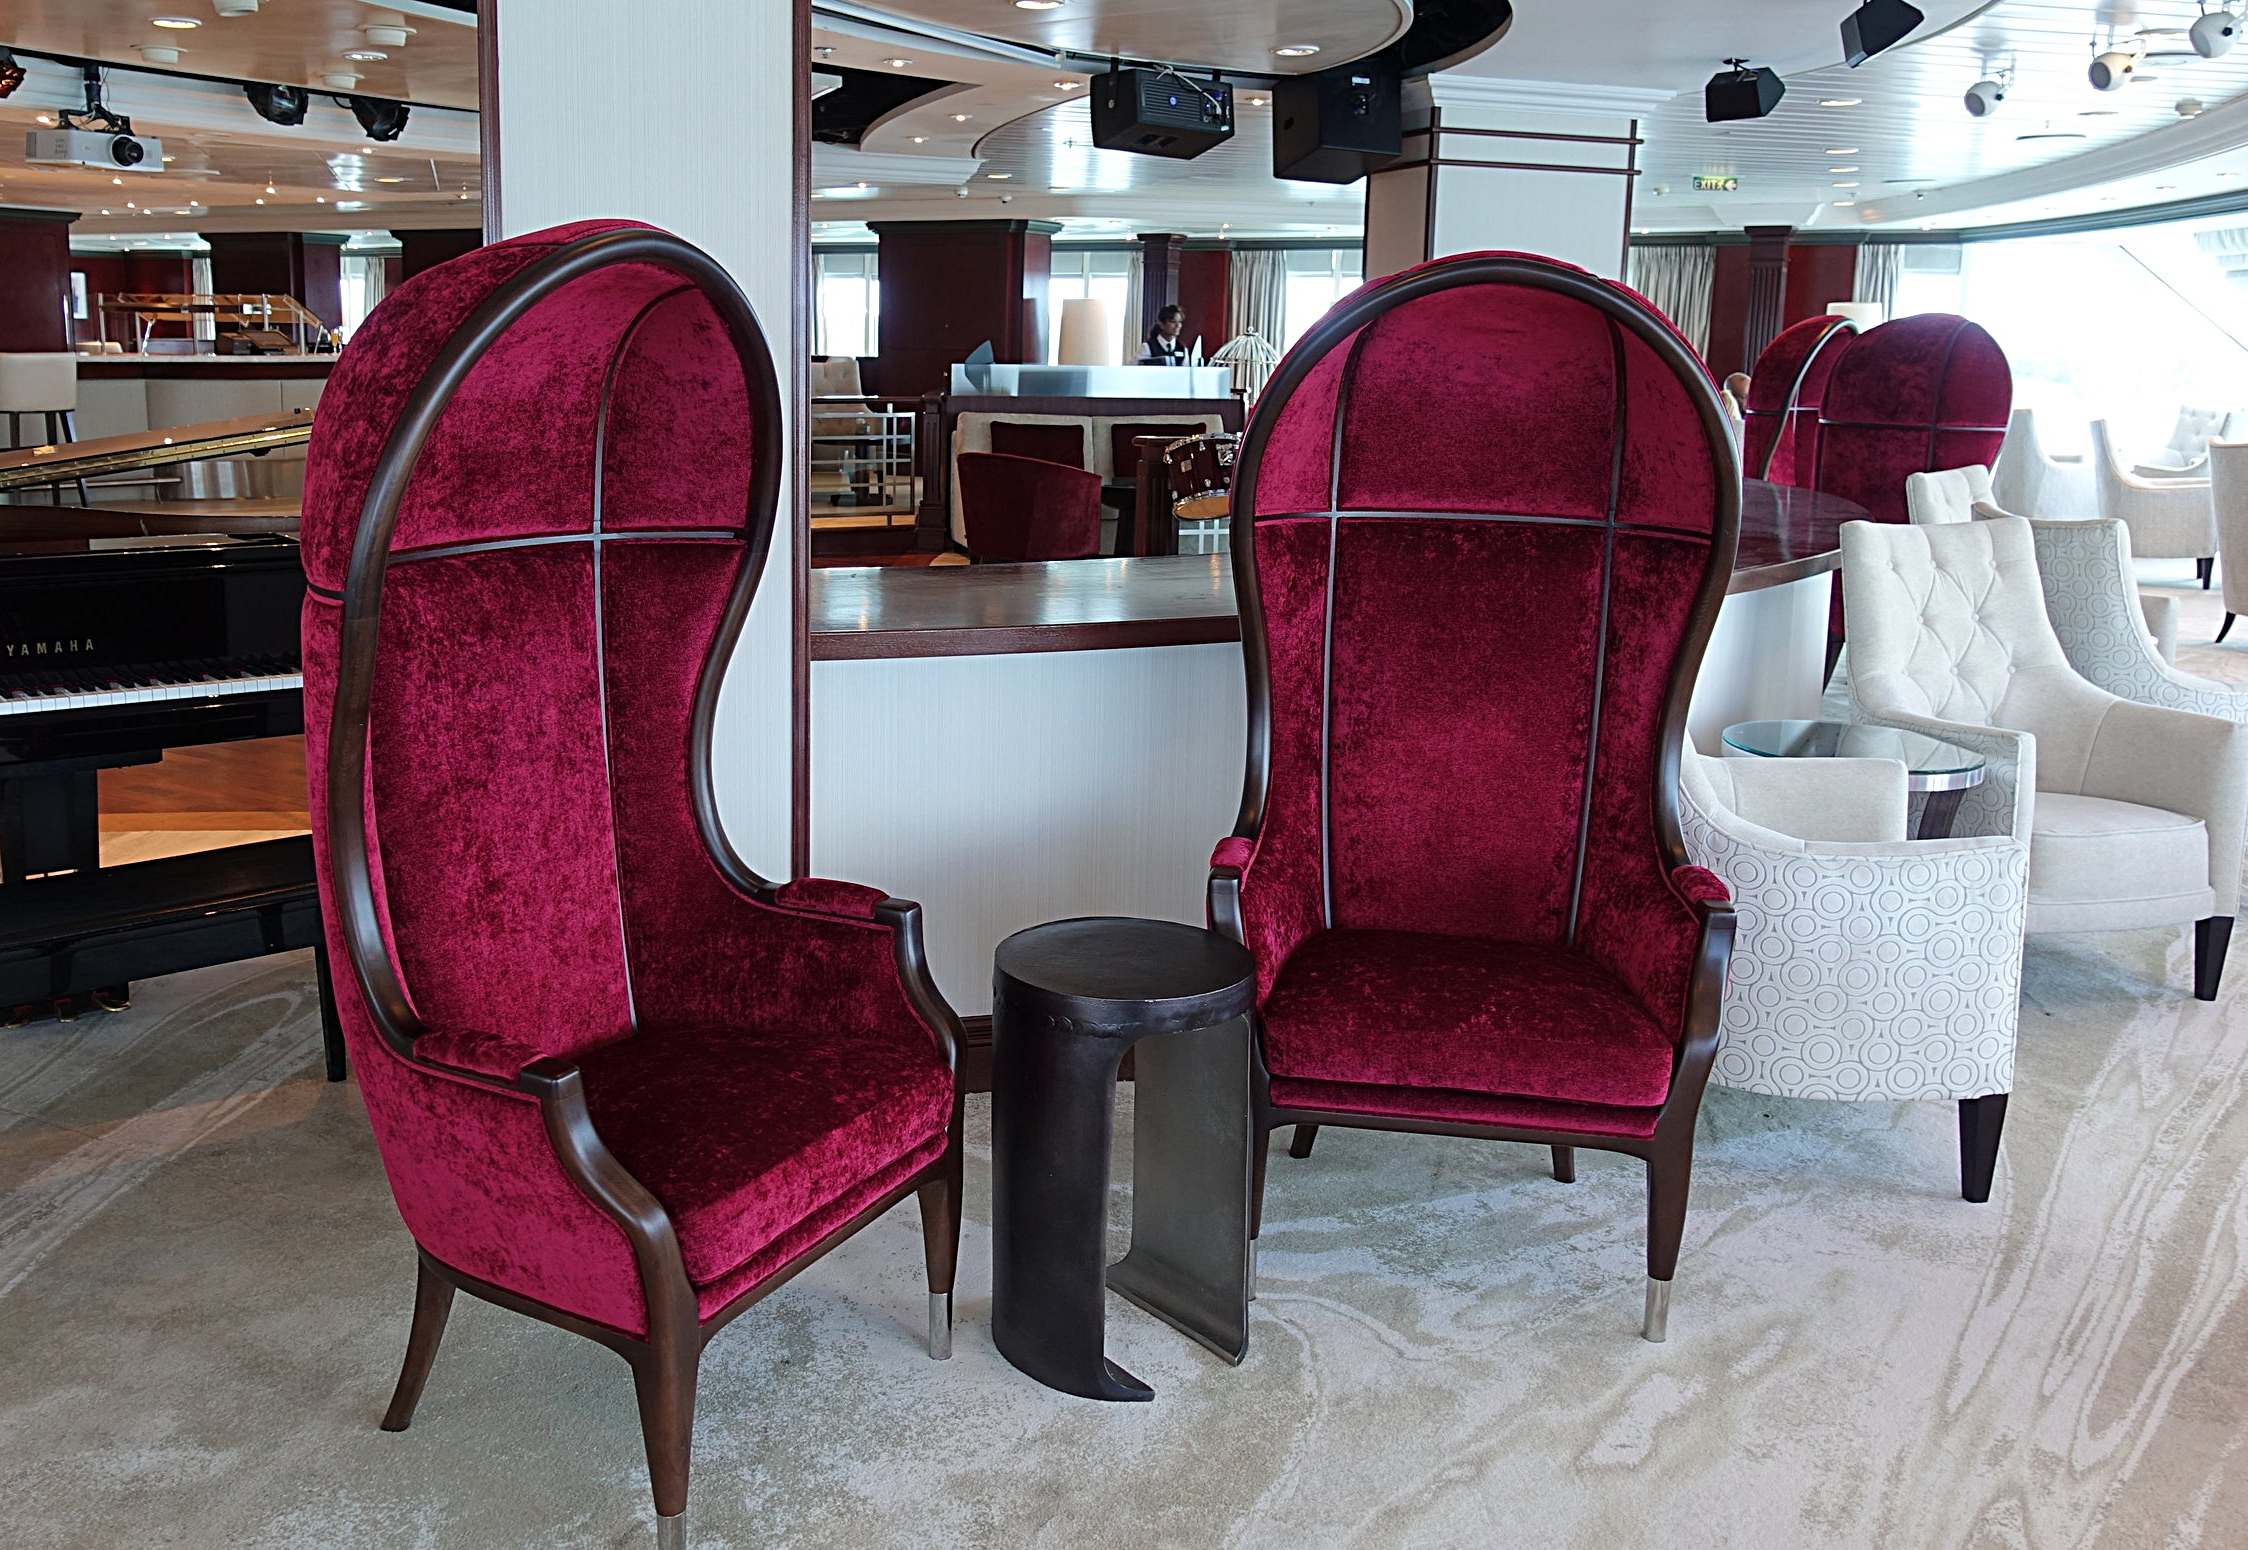 The light decor is offset by the deep tones of these quirky chairs.